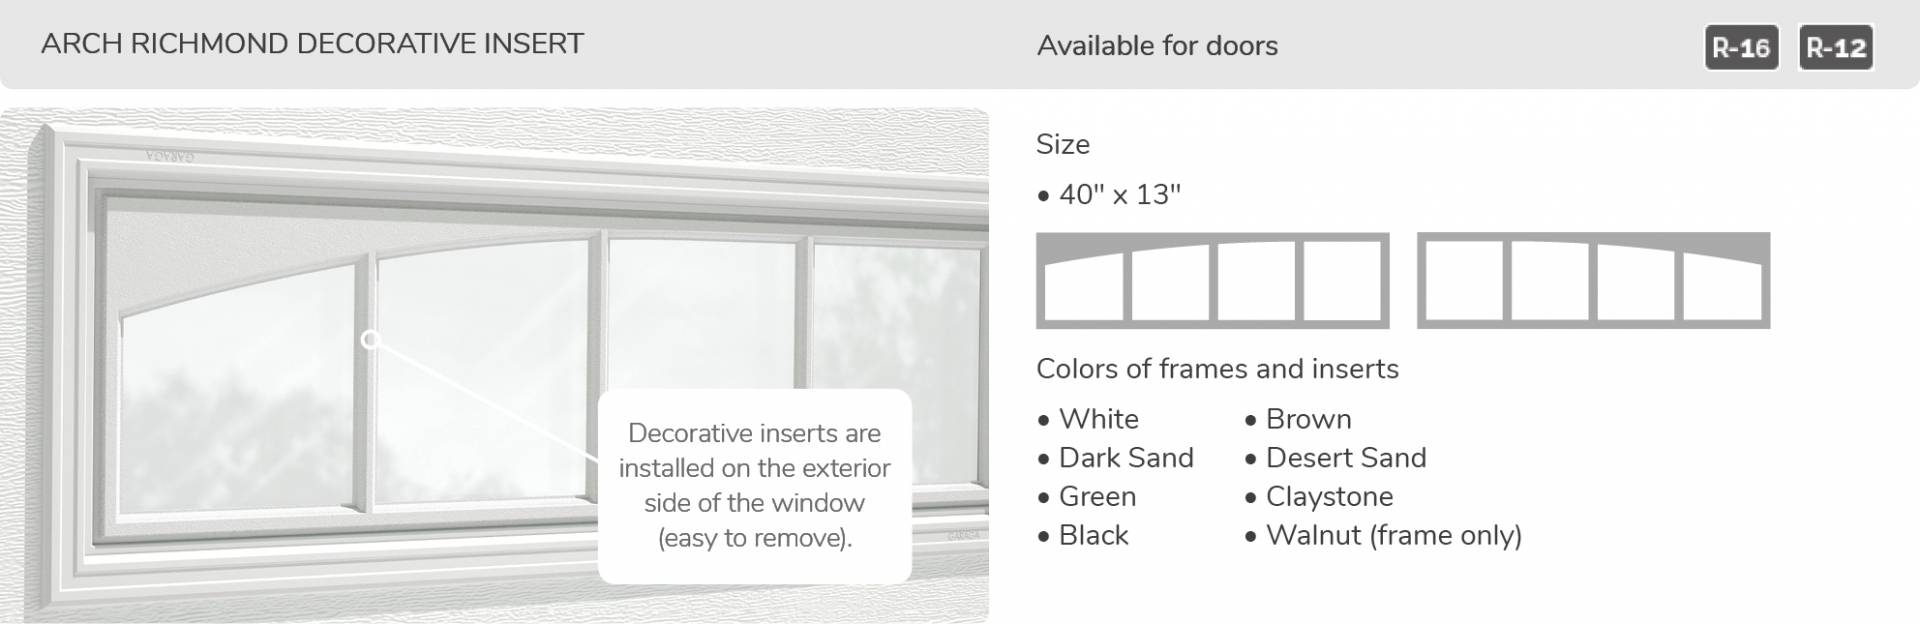 Arch Richmond Decorative Insert, 40' x 13', available for doors R-16 and R-12